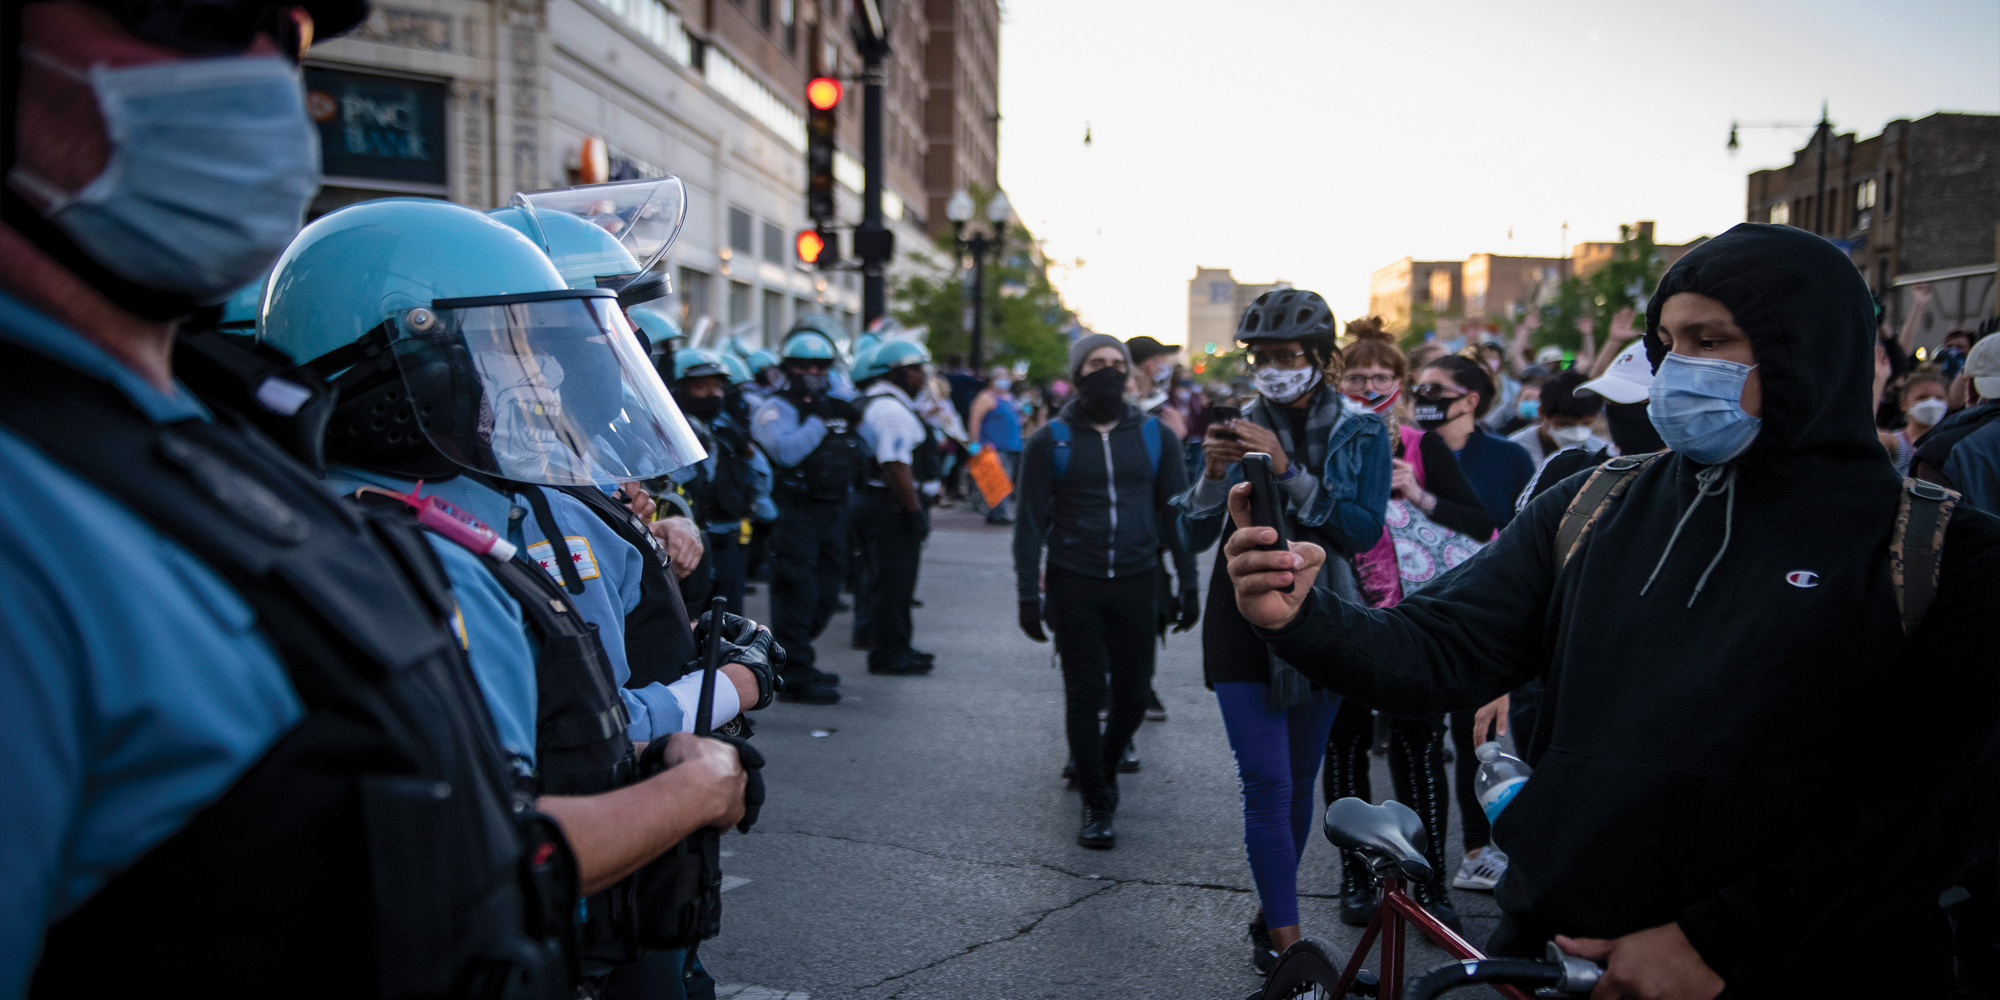 A July 1, 2020, protest in Chicago's Uptown neighborhood